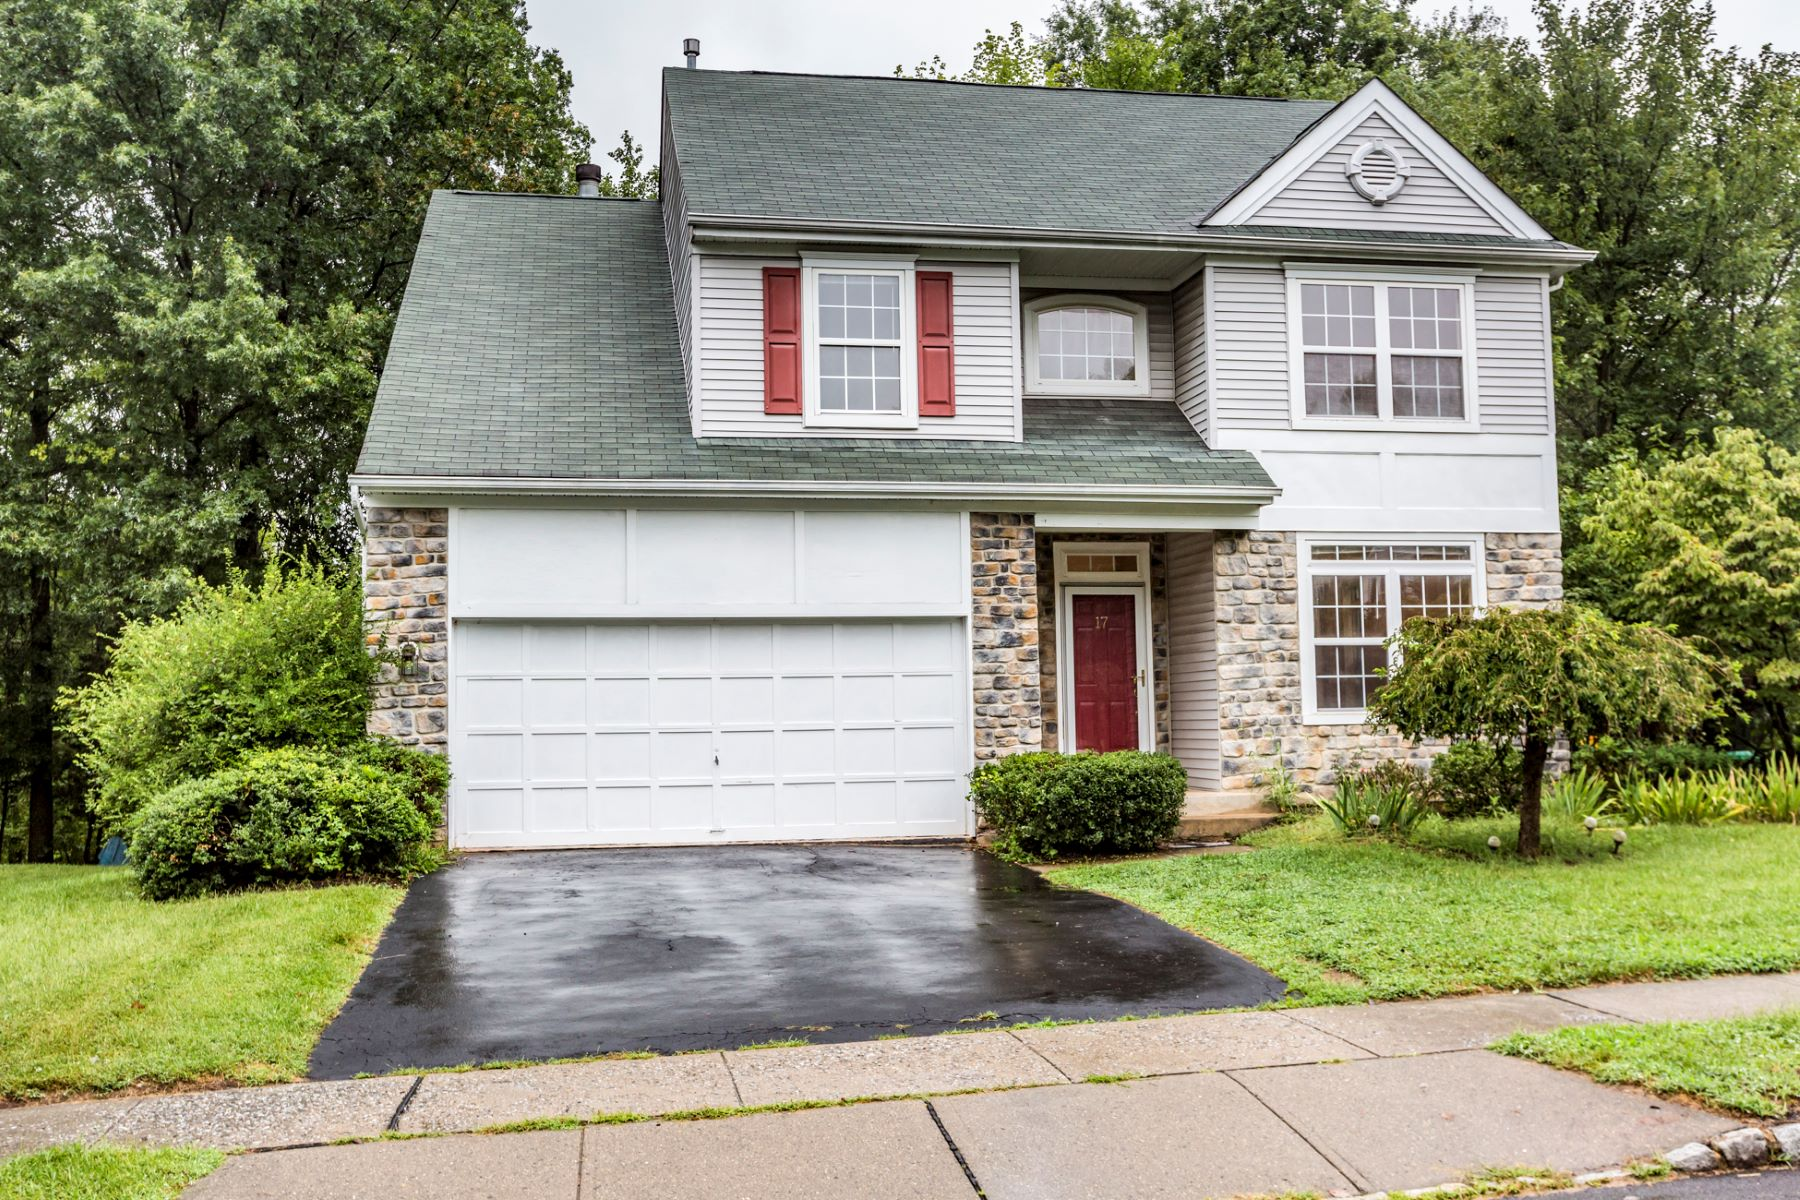 Single Family Home for Sale at In Convenient Woodsedge With 3 Finished Levels 17 Harvard Circle, Princeton, New Jersey 08540 United States